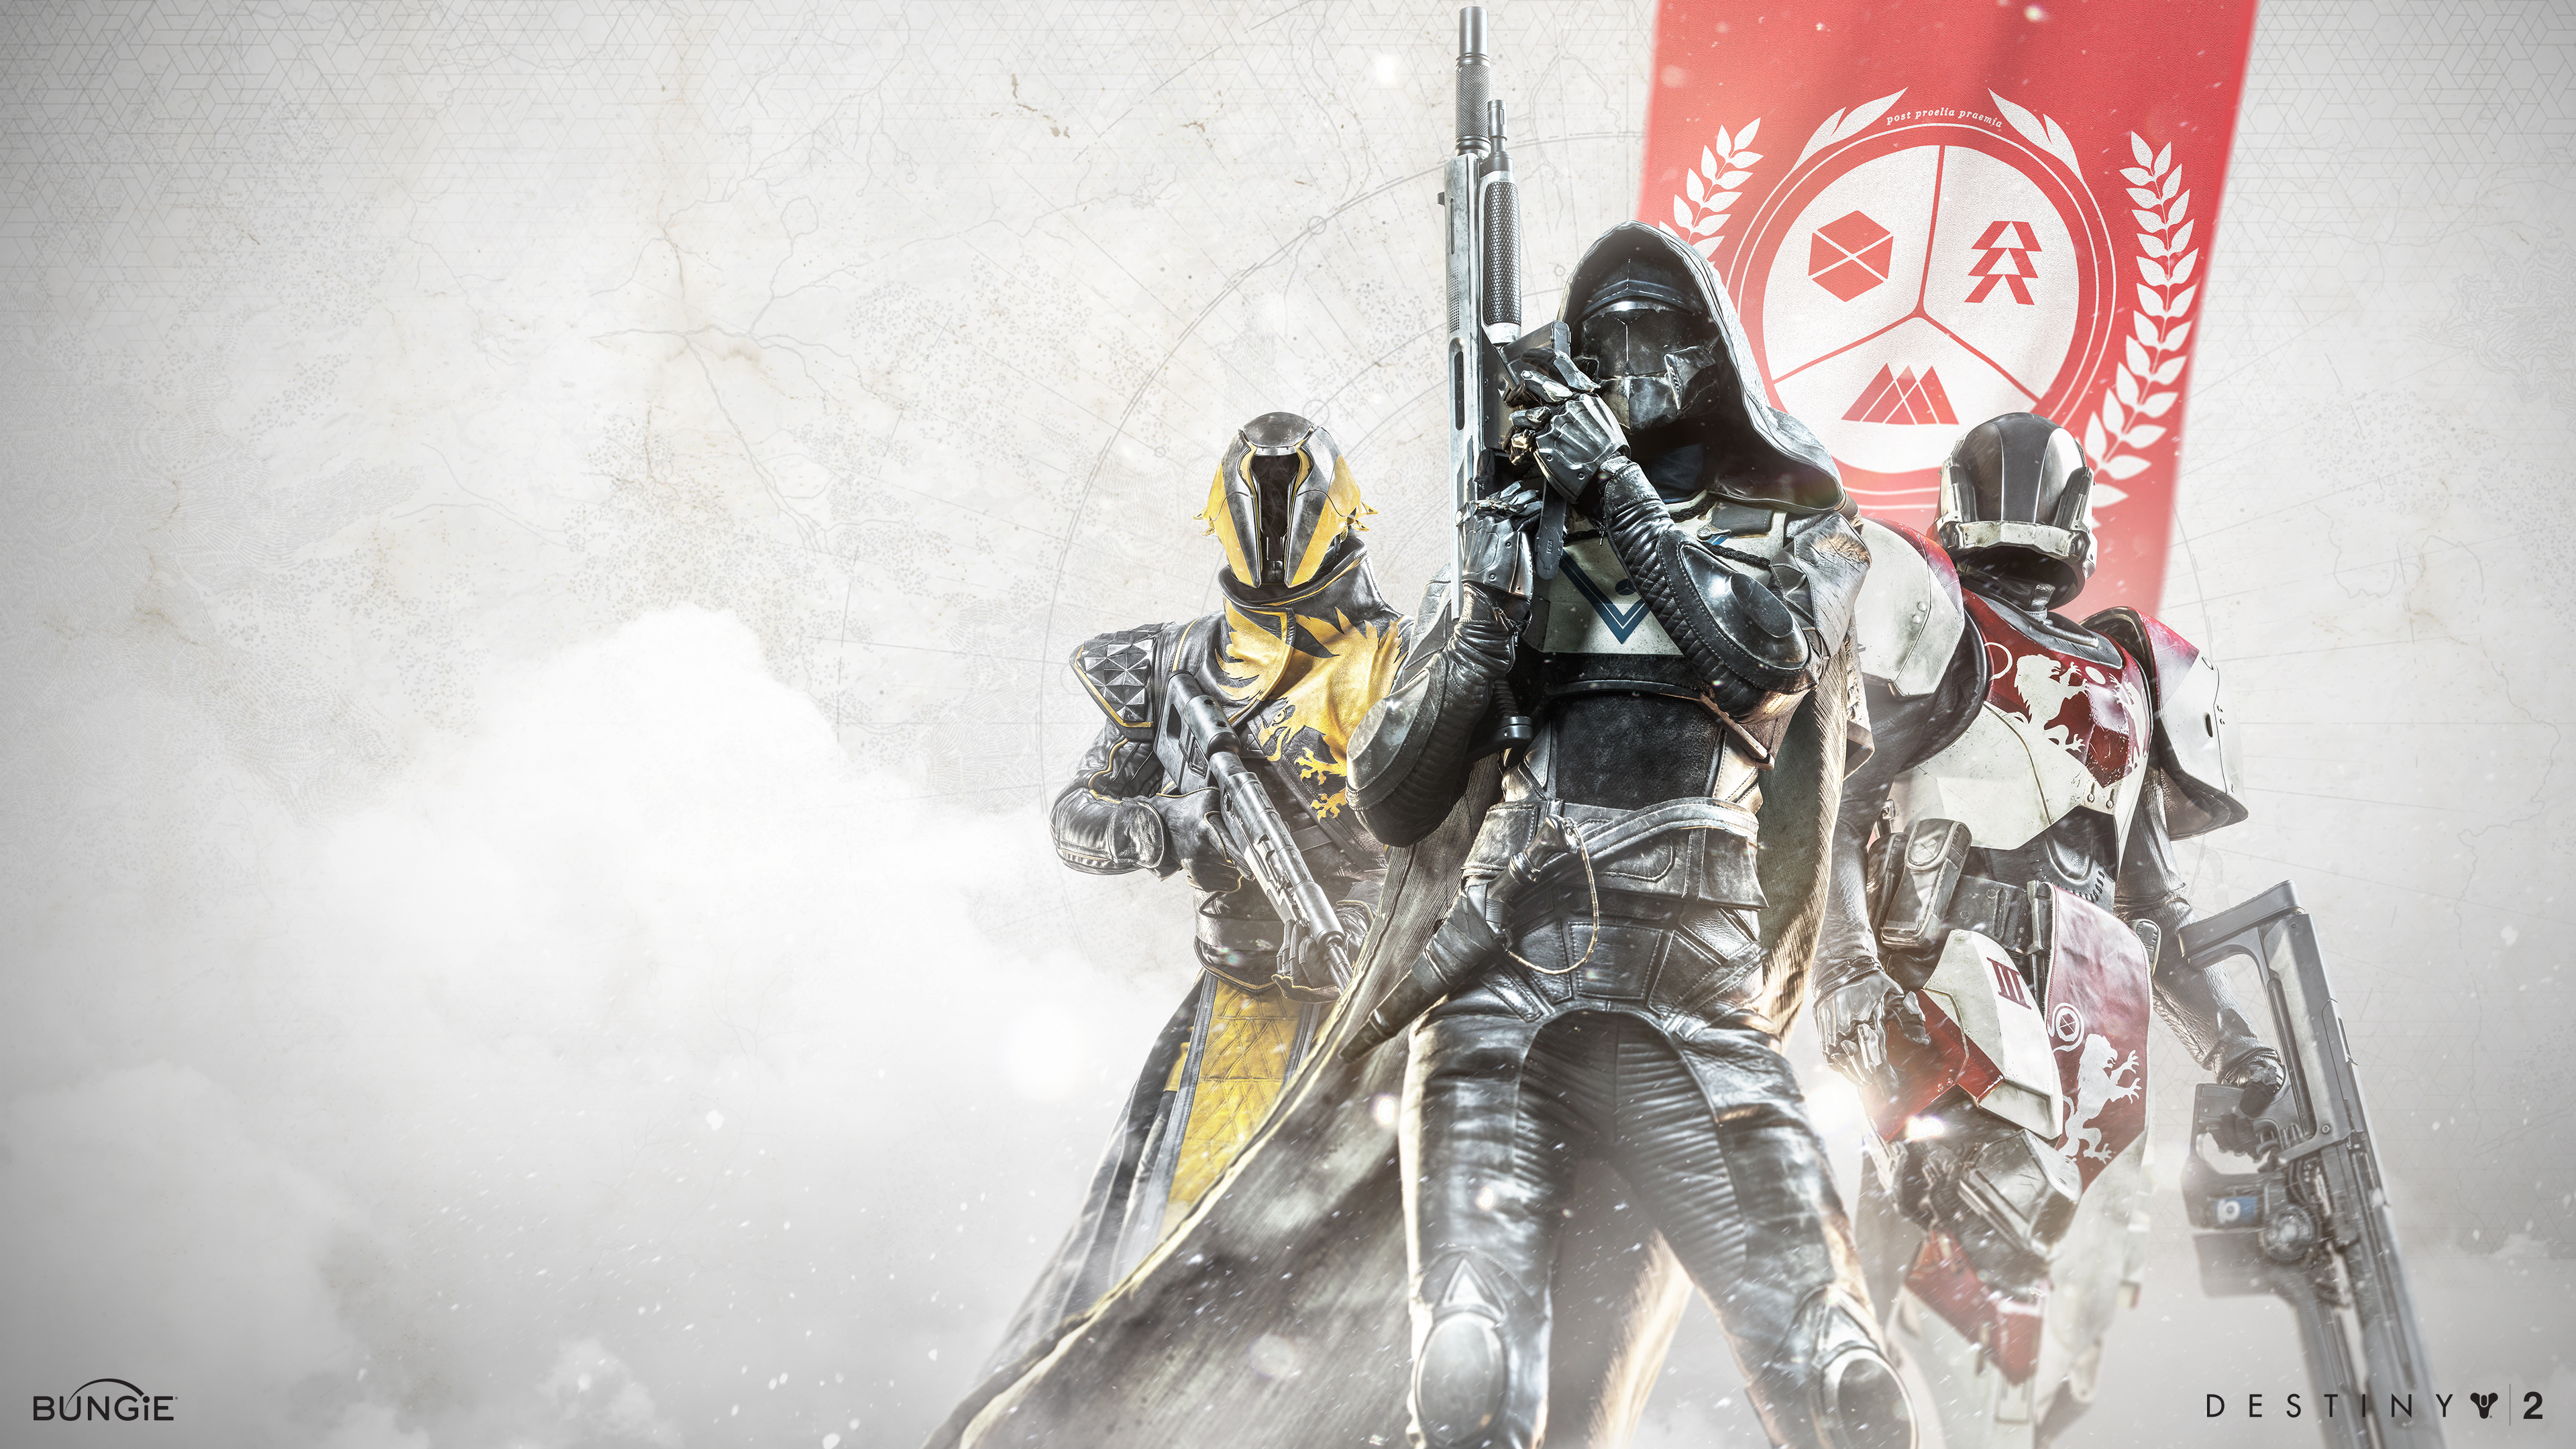 40 Destiny 2 HD 4k Wallpapers with Hunters Titans More from 3840x2160